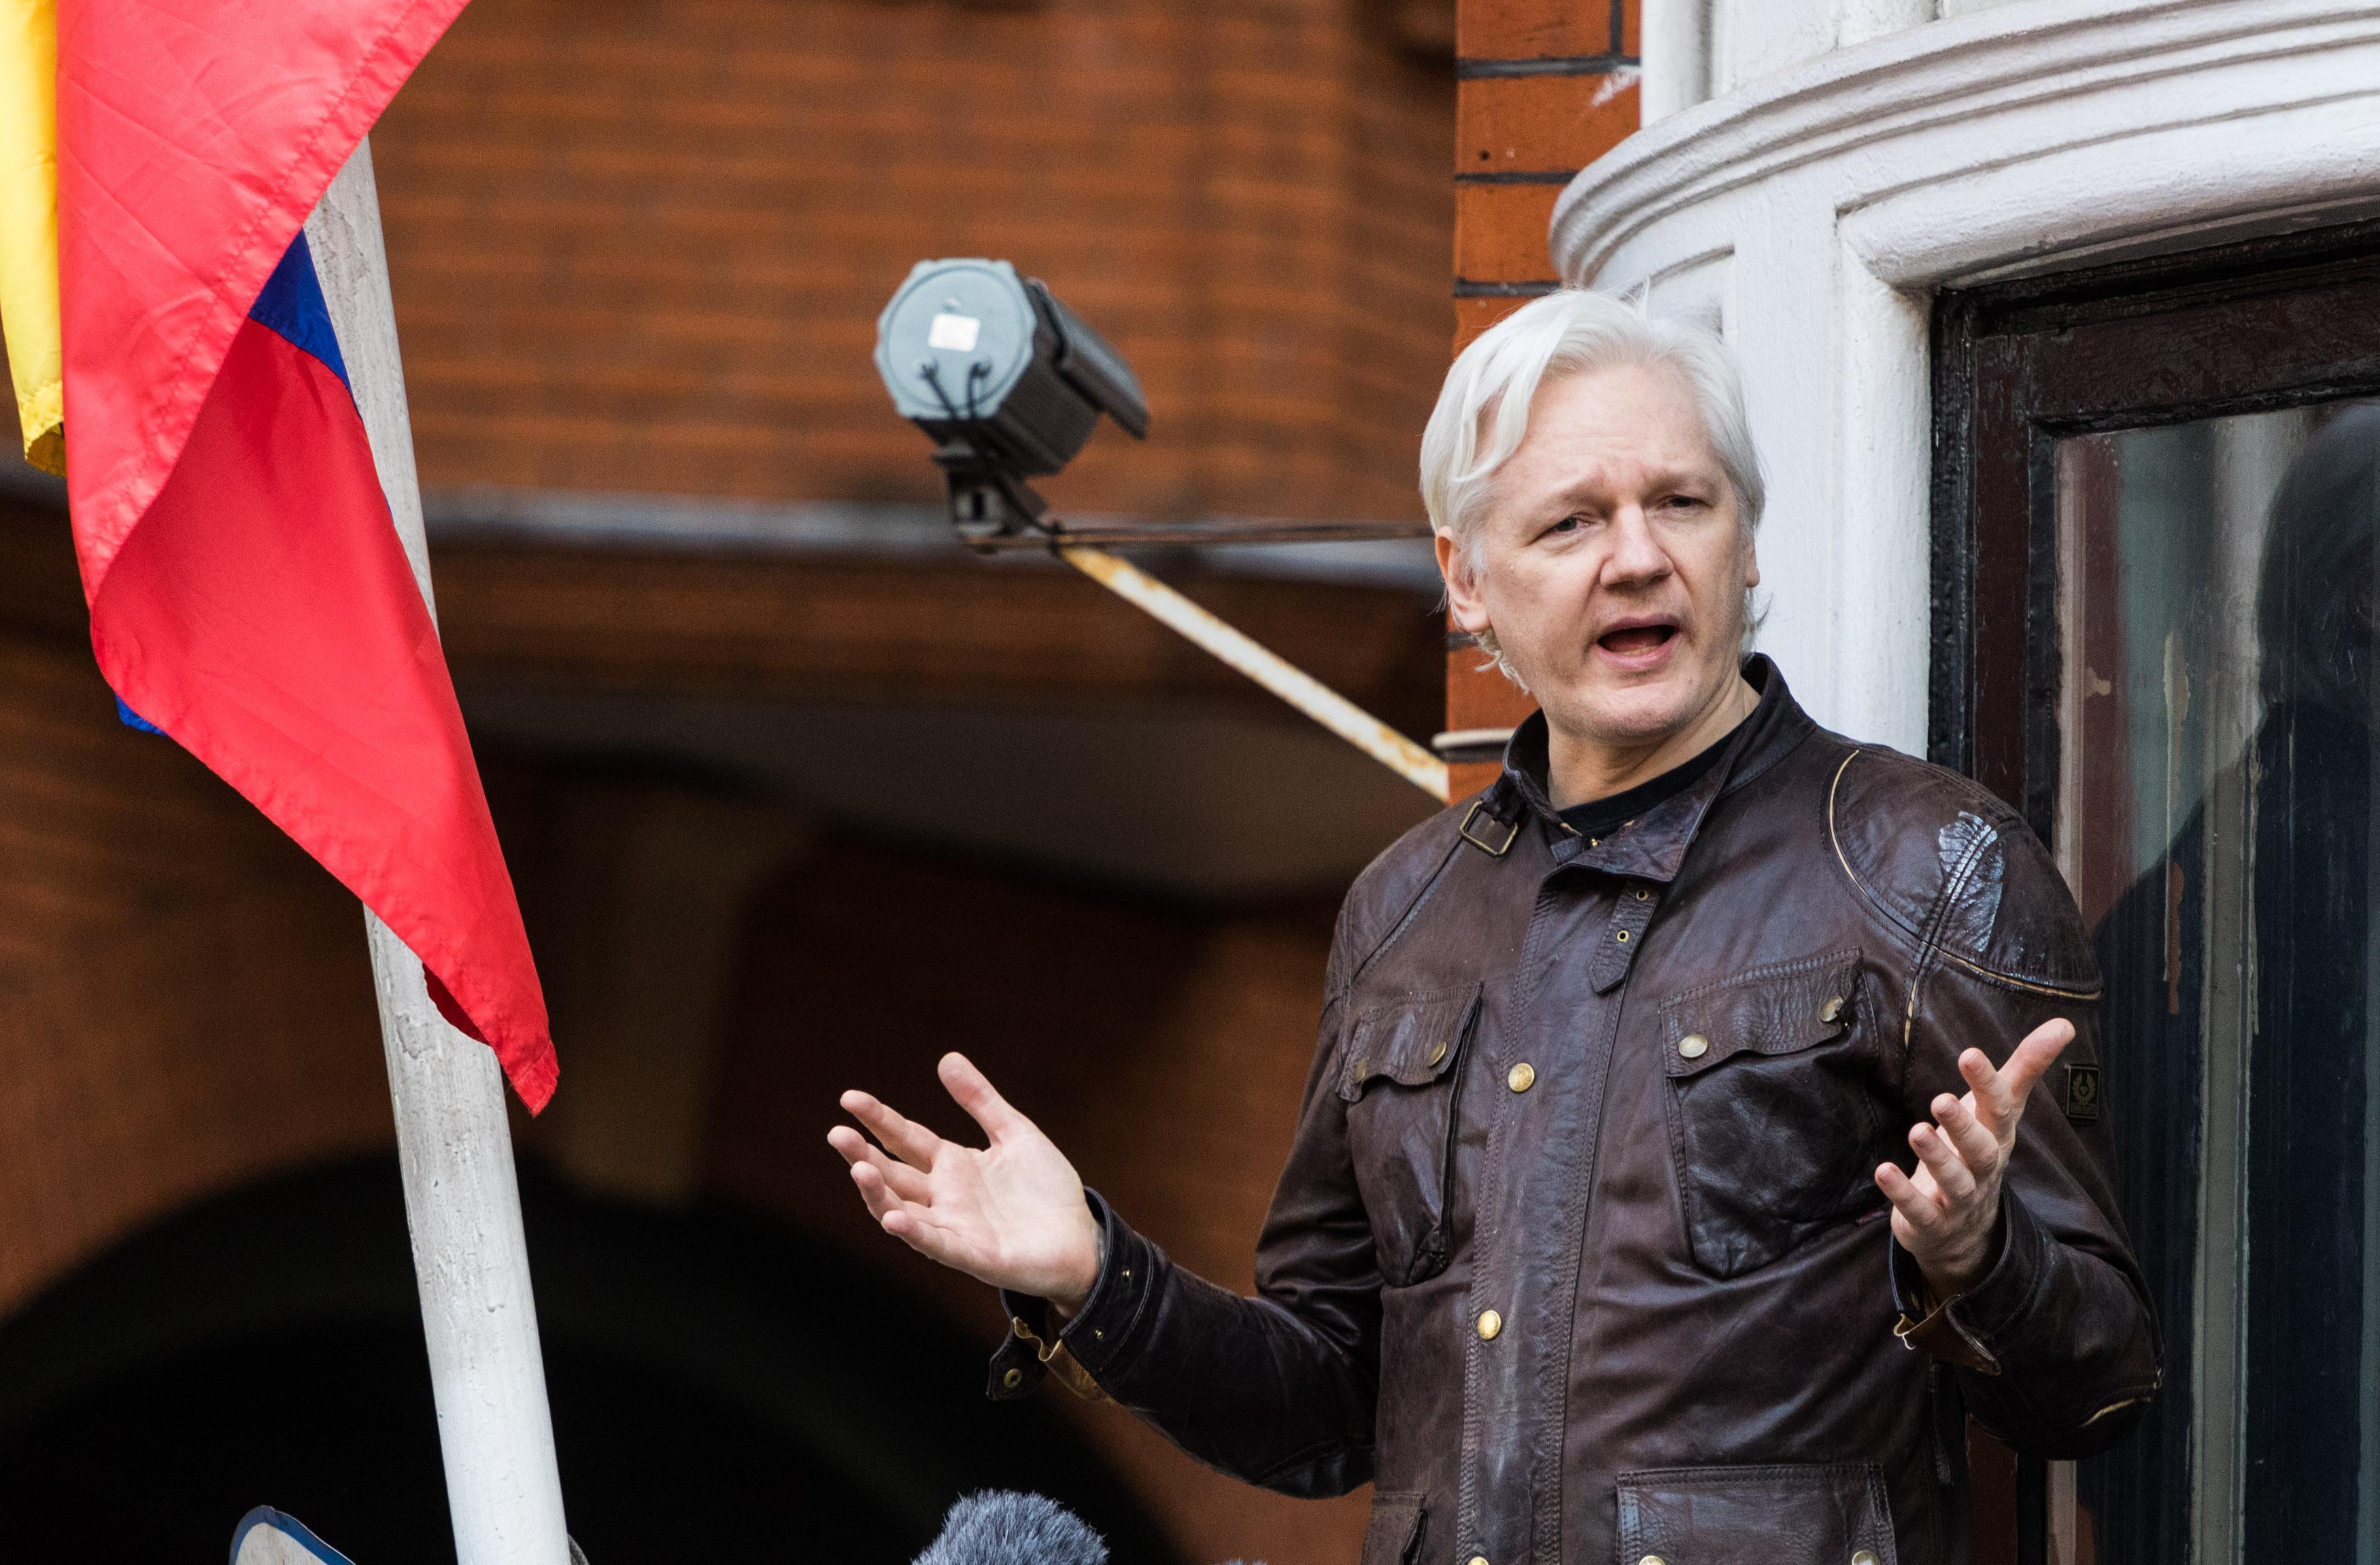 LONDON, UNITED KINGDOM - MAY 19: Wikileaks Founder Julian Assange addresses the media at the Ecuadorian Embassy where he has been exiled under political asylum, following Sweden's dropping of rape charges against him on May 19, 2017 in London, England. He had feared that the charges were being used as a ploy to get him extradited to the United States where he faces charges of breaching national security. PHOTOGRAPH BY Paul Davey / Barcroft Images London-T:+44 207 033 1031 E:hello@barcroftmedia.com - New York-T:+1 212 796 2458 E:hello@barcroftusa.com - New Delhi-T:+91 11 4053 2429 E:hello@barcroftindia.com www.barcroftimages.com (Photo credit should read Paul Davey / Barcroft Media via Getty Images / Barcroft Media via Getty Images)